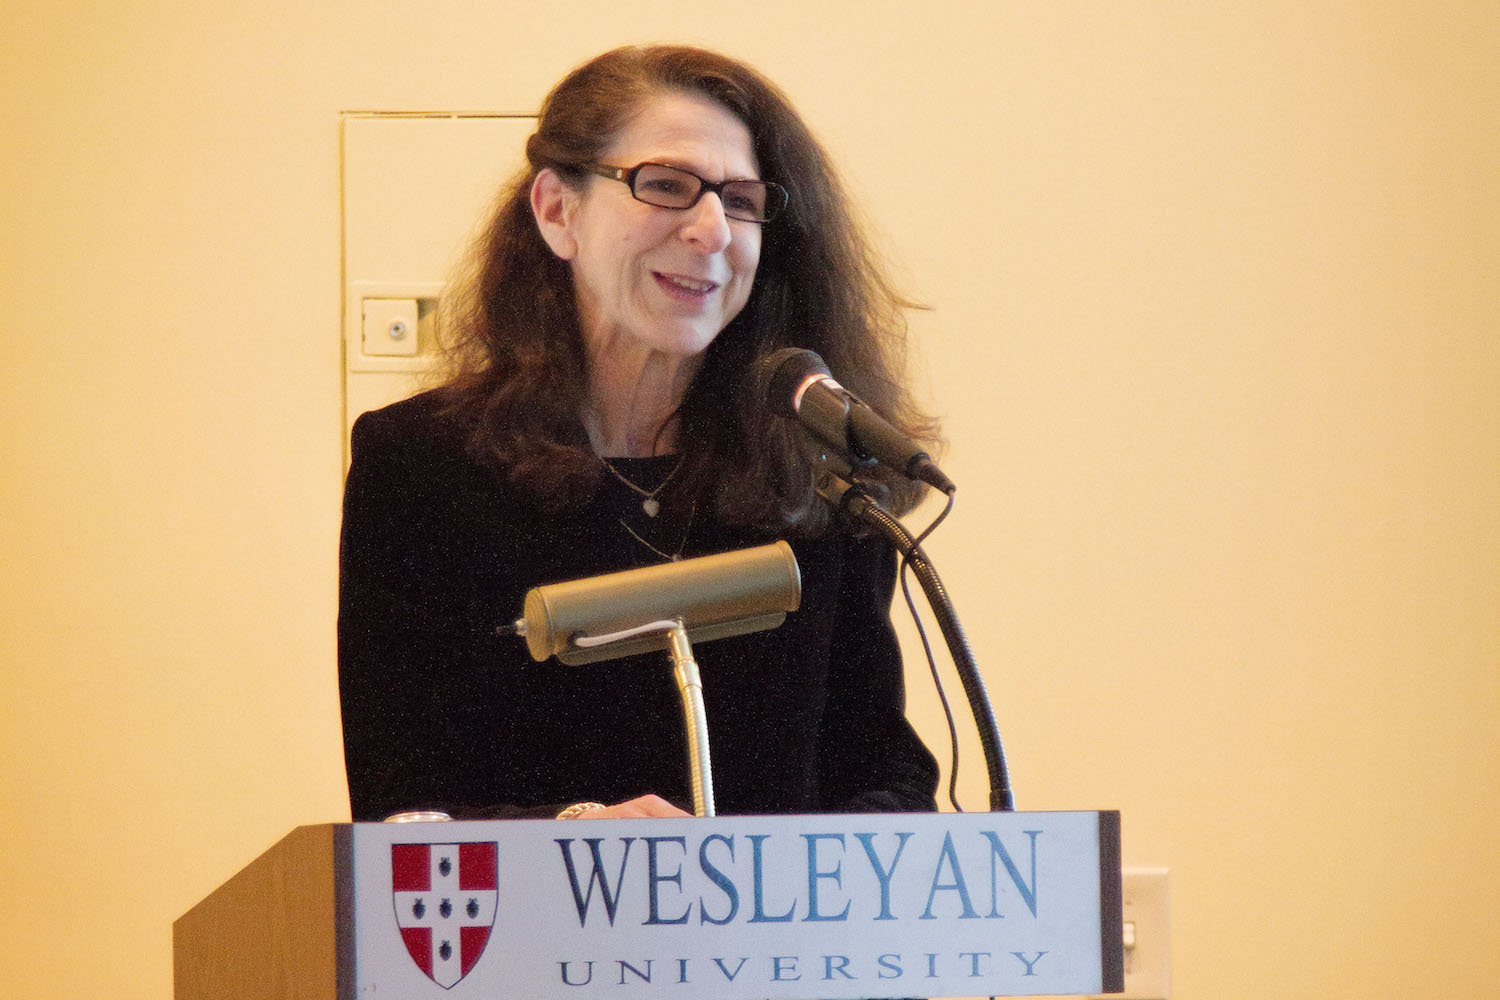 "Anne Greene, director of the Wesleyan Writers Conference, University Professor of English, introduced Koeppel, a former writer, editor, and producer at CBS News, who is the author of ""City On A Grid: How New York Became New York"" (2015). Koeppel has helped Wesleyan establish the Koeppel journalism courses, which bring distinguished journalists to campus each semester to work closely with students. Koeppel's talk was hosted by the Writing Certificate Program and Distinguished Writers Series. A book signing followed the talk."